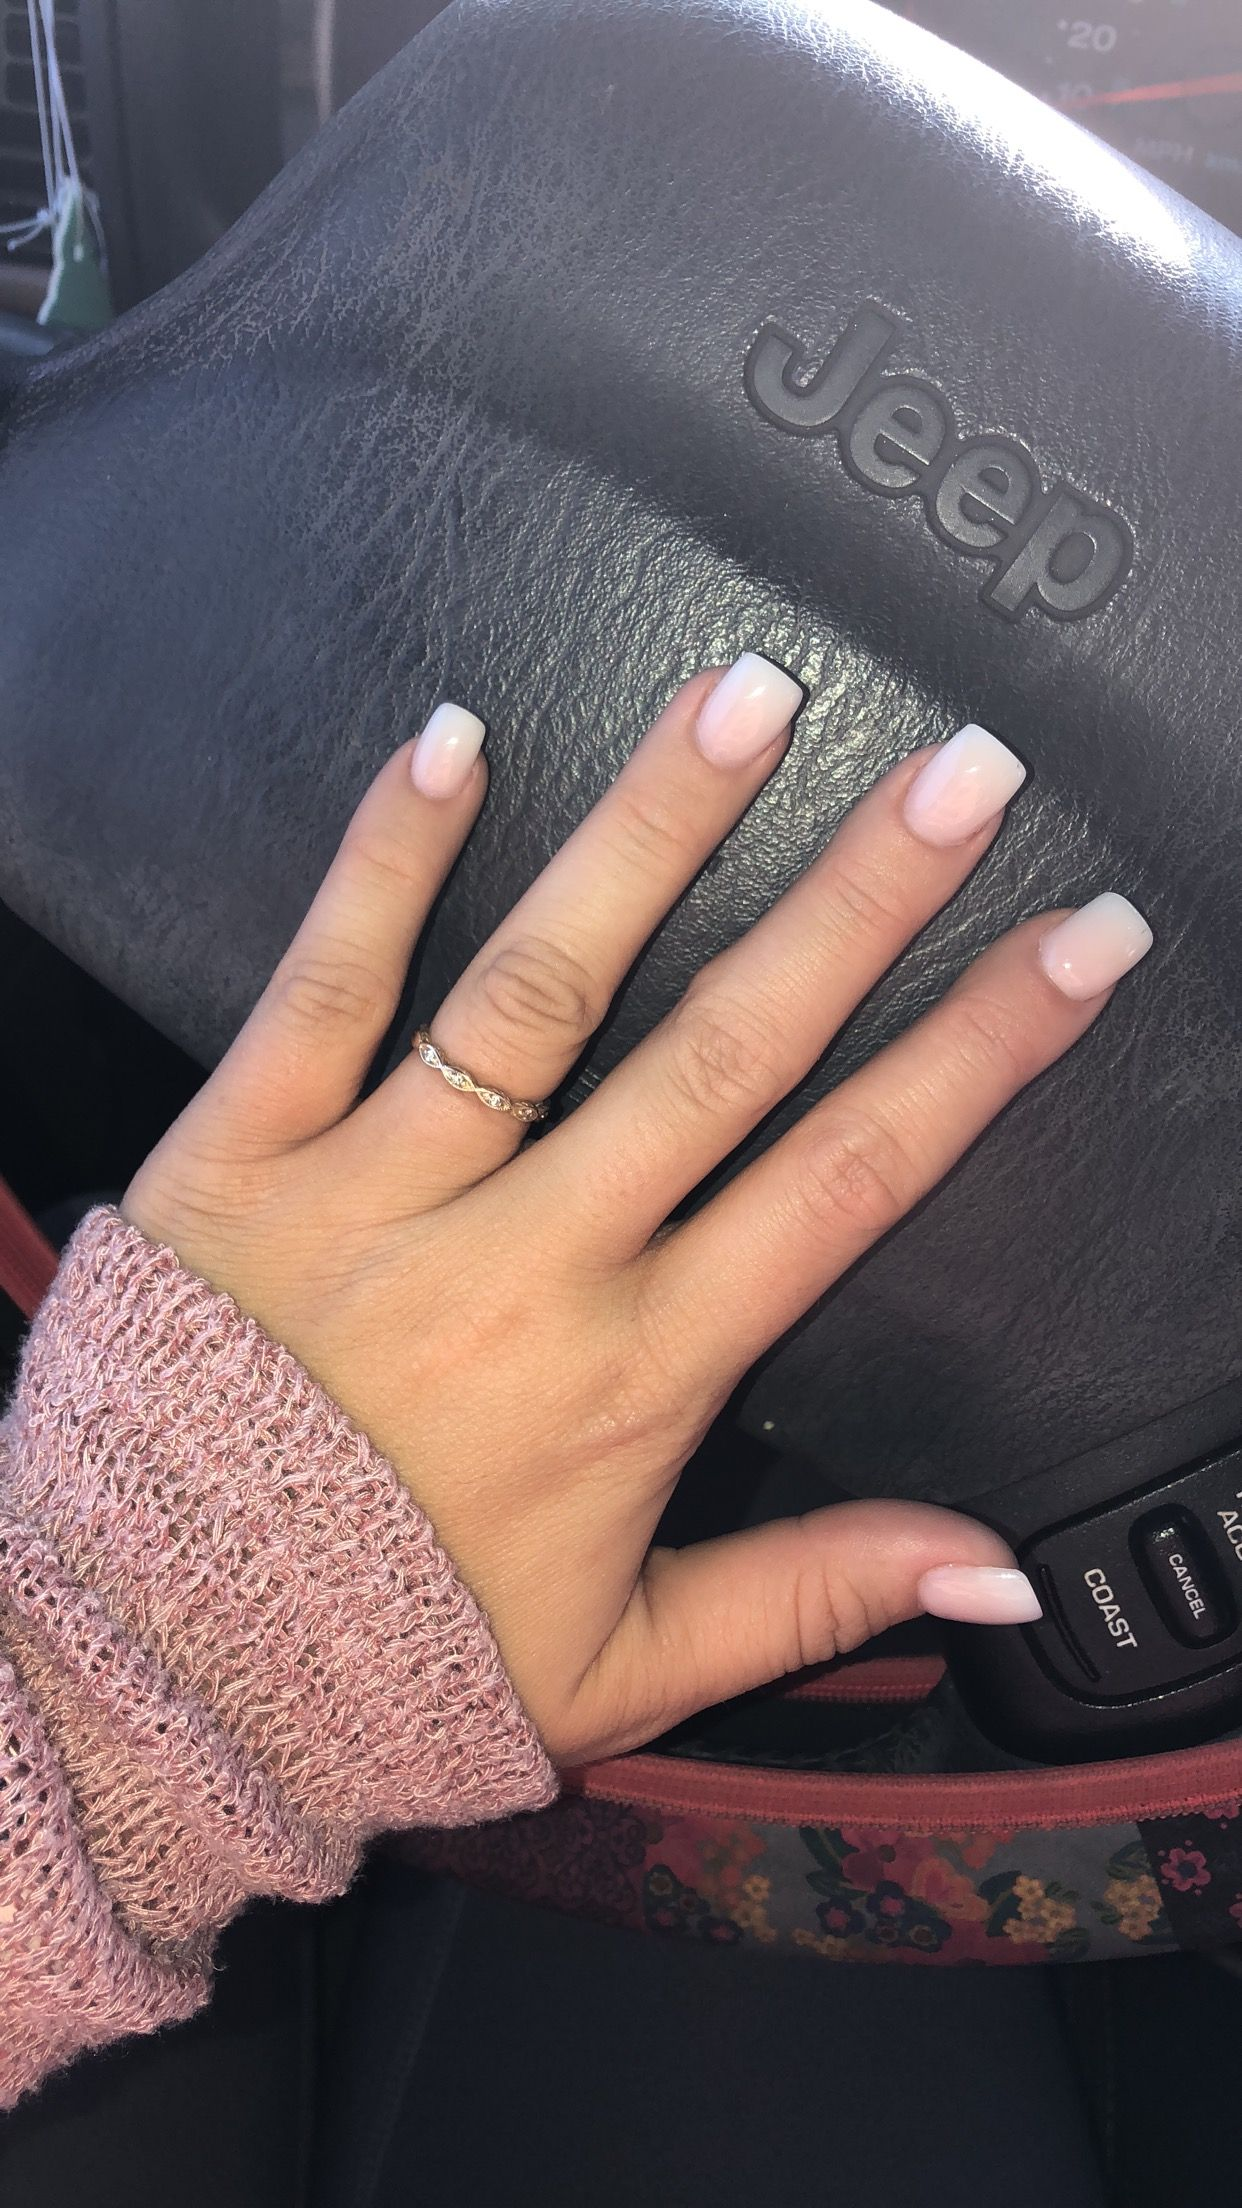 Pin by Whitney Warren on Nails   Square acrylic nails ...